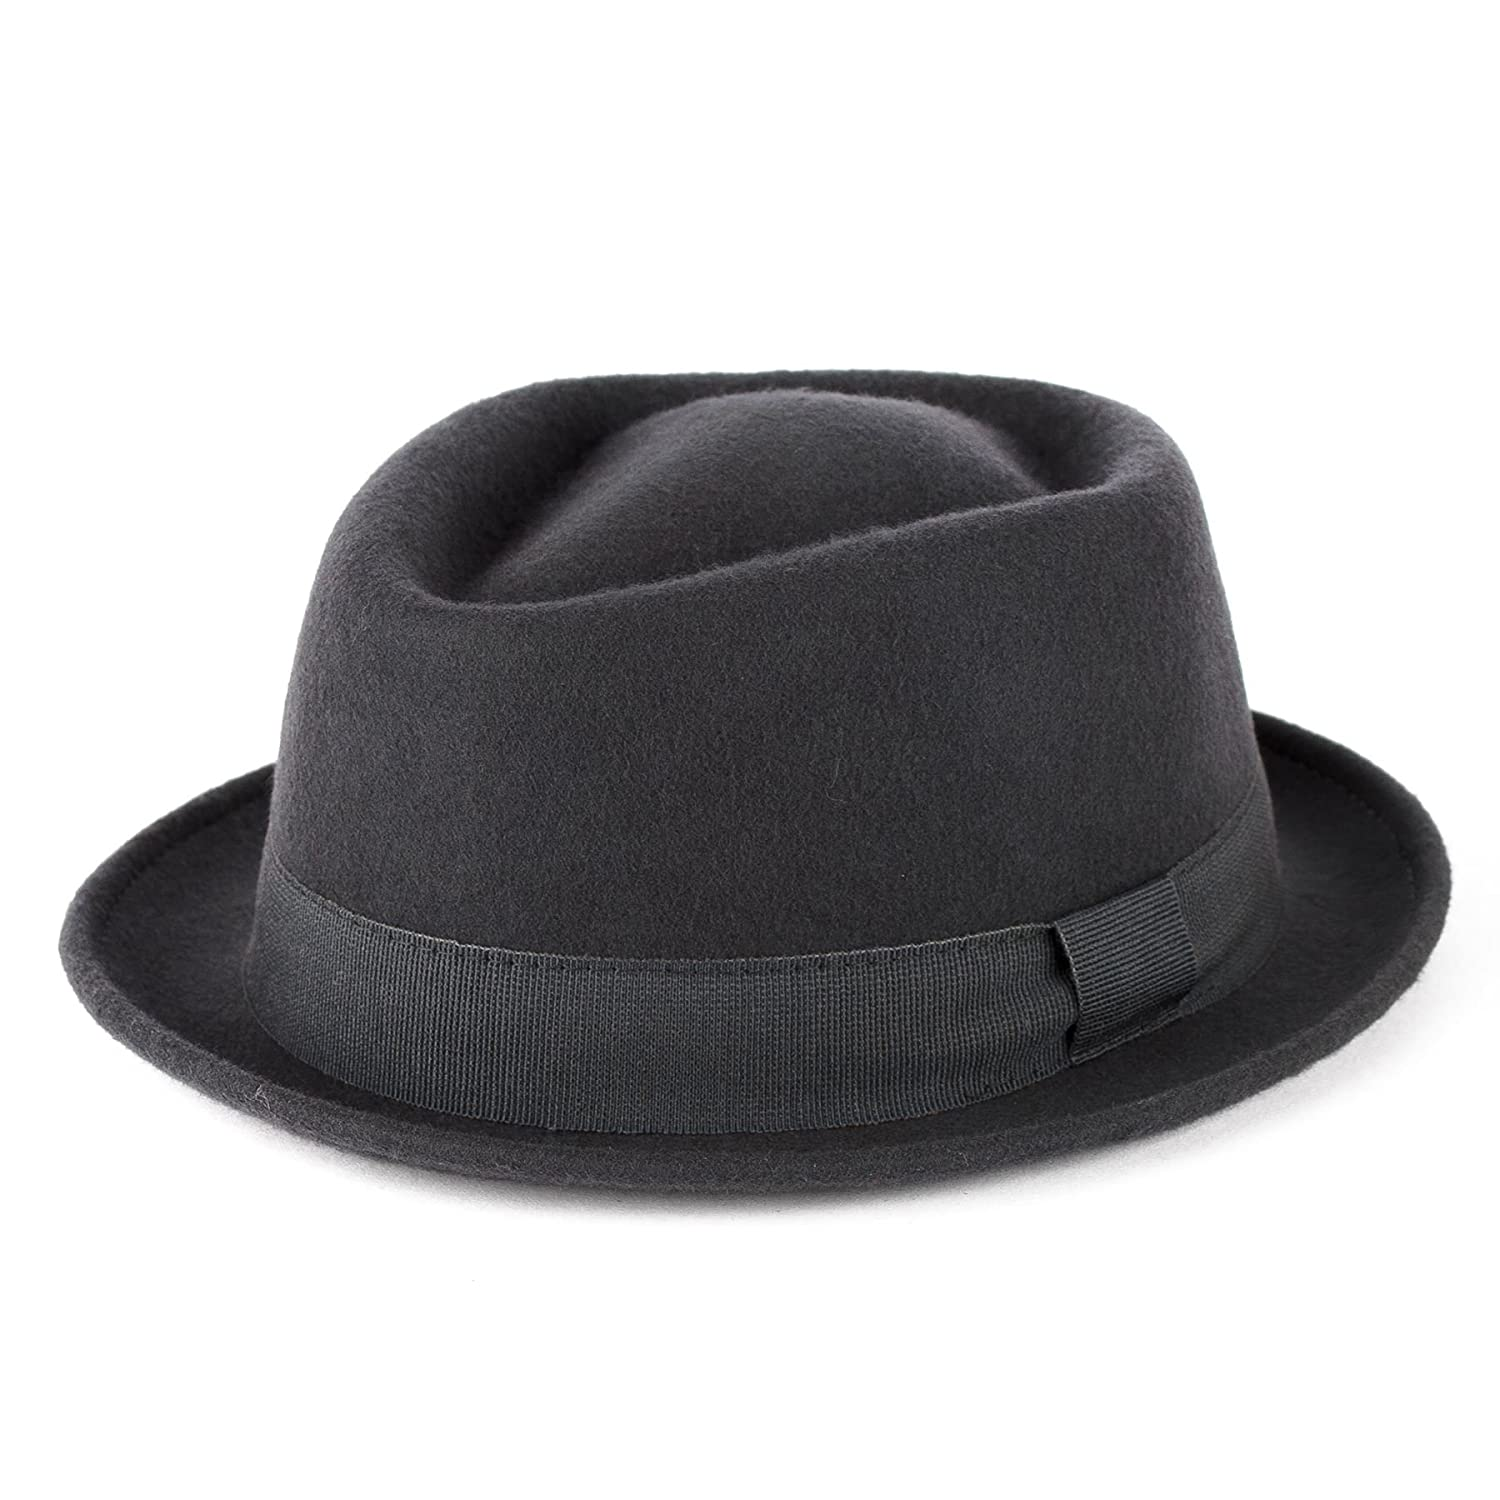 Cappello Pork Pie Lana con Banda in Grosgrain 461b7949daf5